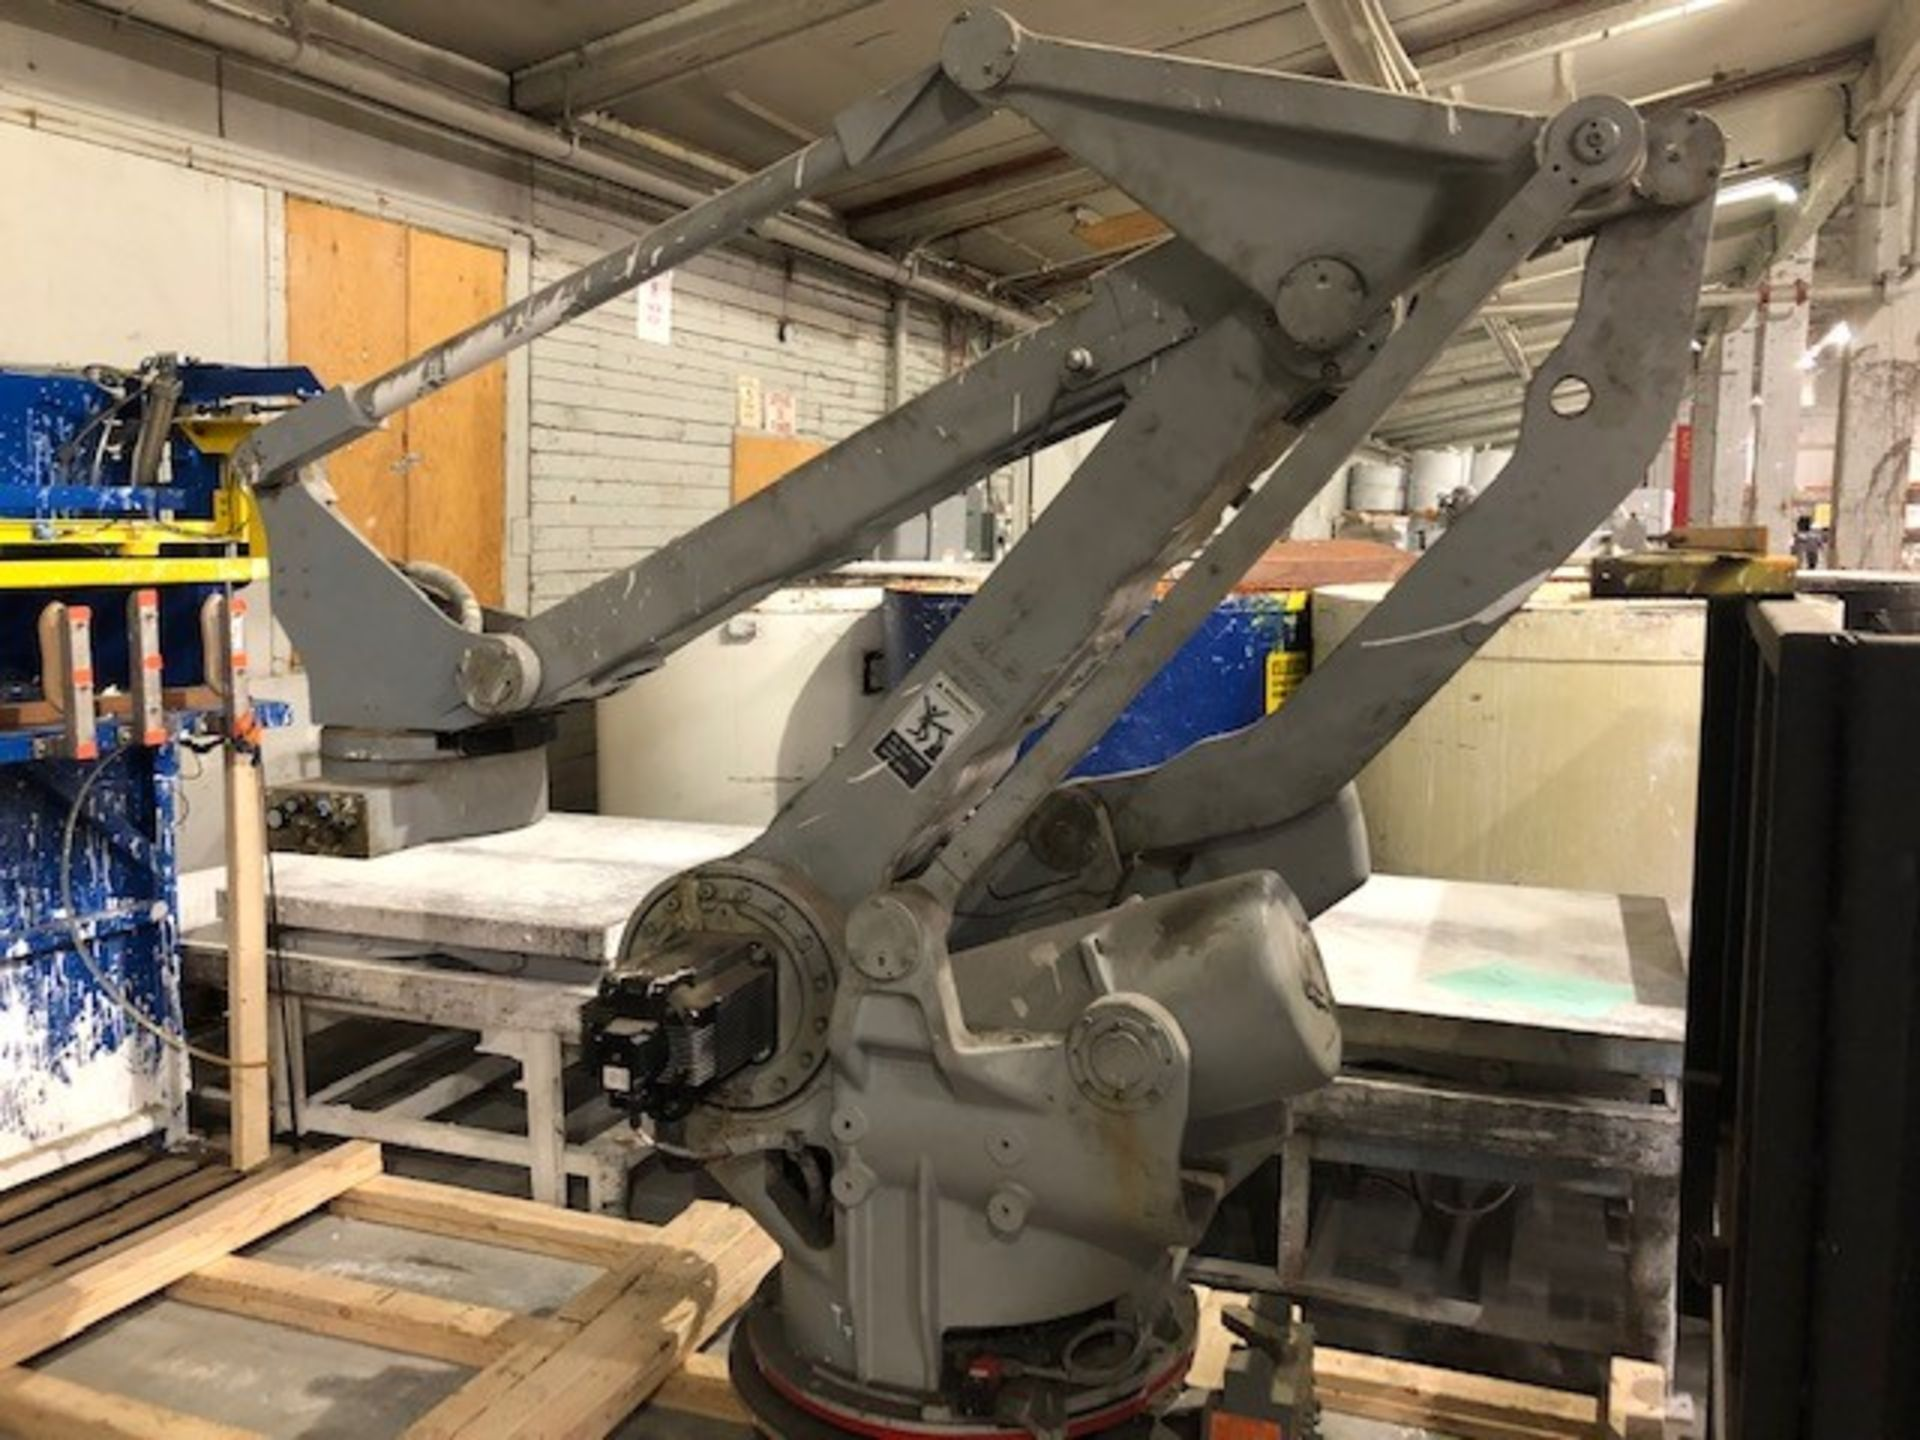 Lot 43 - Robot Motoman, Type: YR-EPL160-A10, payload 160 kg, s/n: S5M019-1-1, date: 2005.09